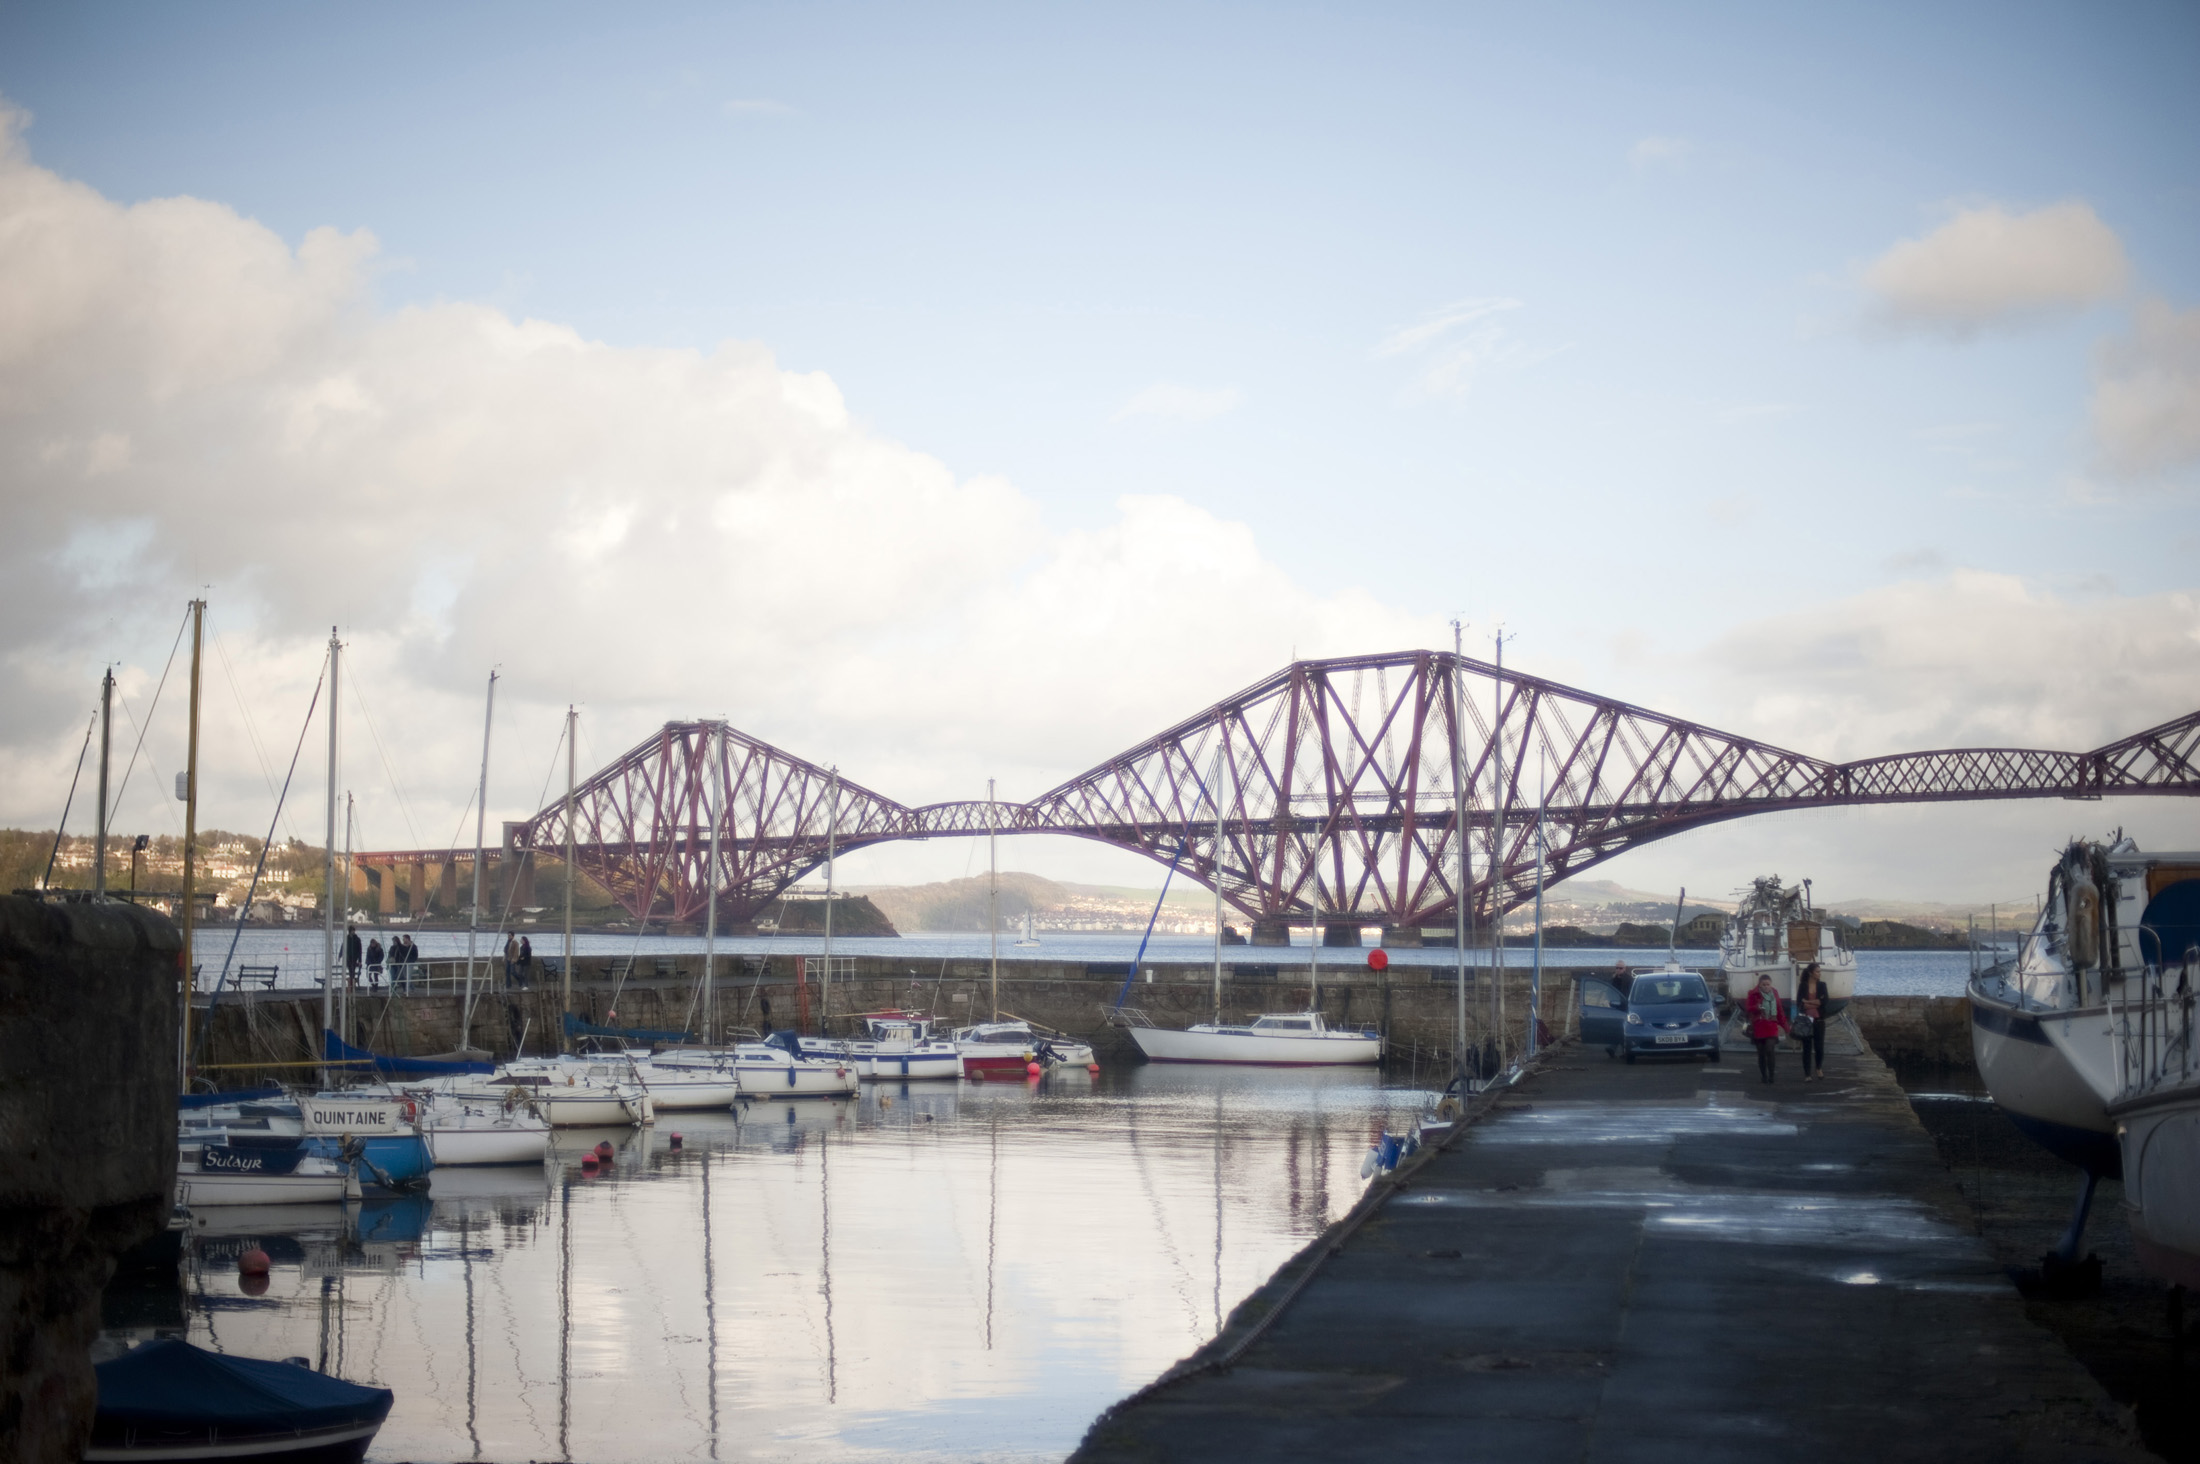 boats in the harbour with the iconic forth rail bridge in the background, queenferry, scotland